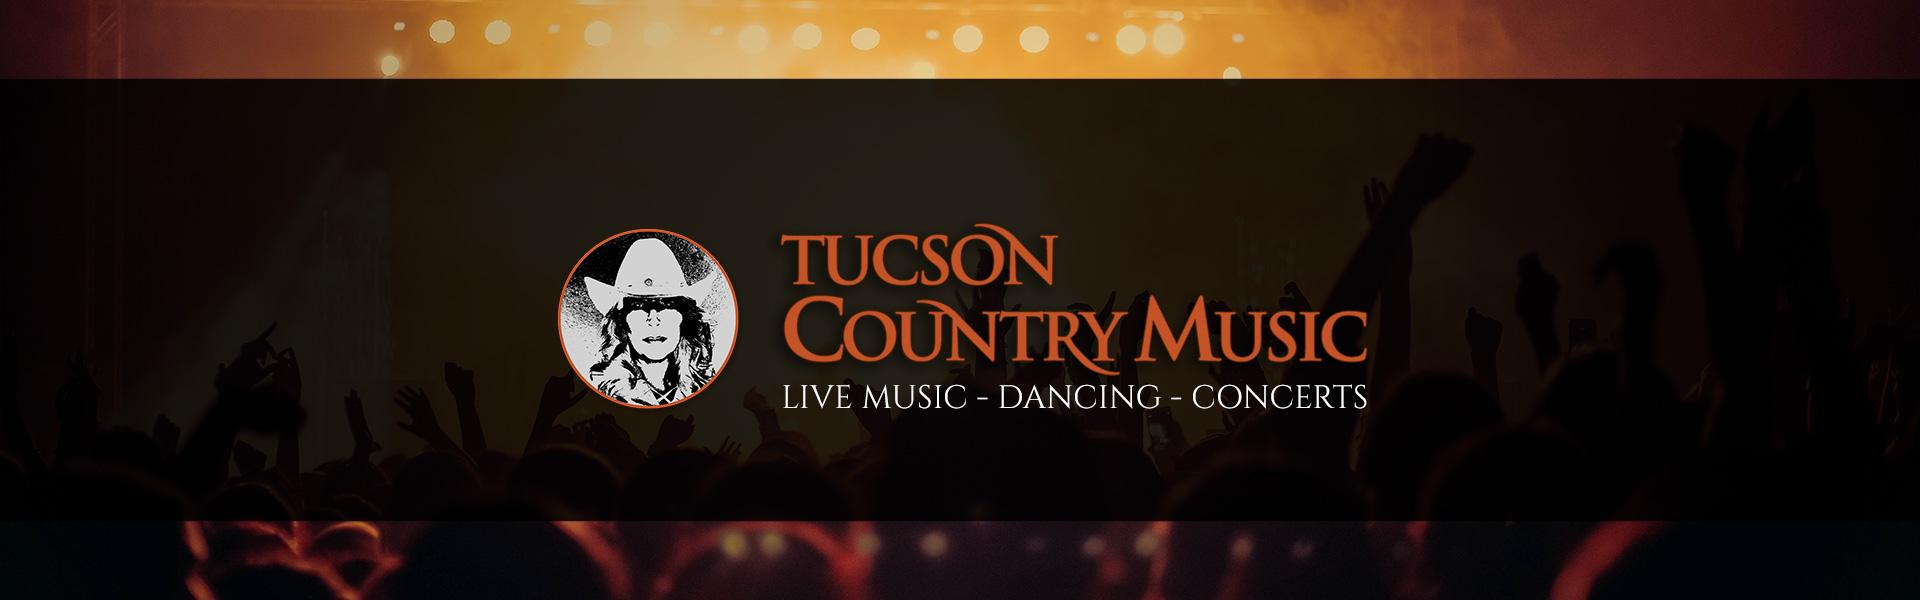 Tucson Country Music - Live Music, Dancing, Concerts